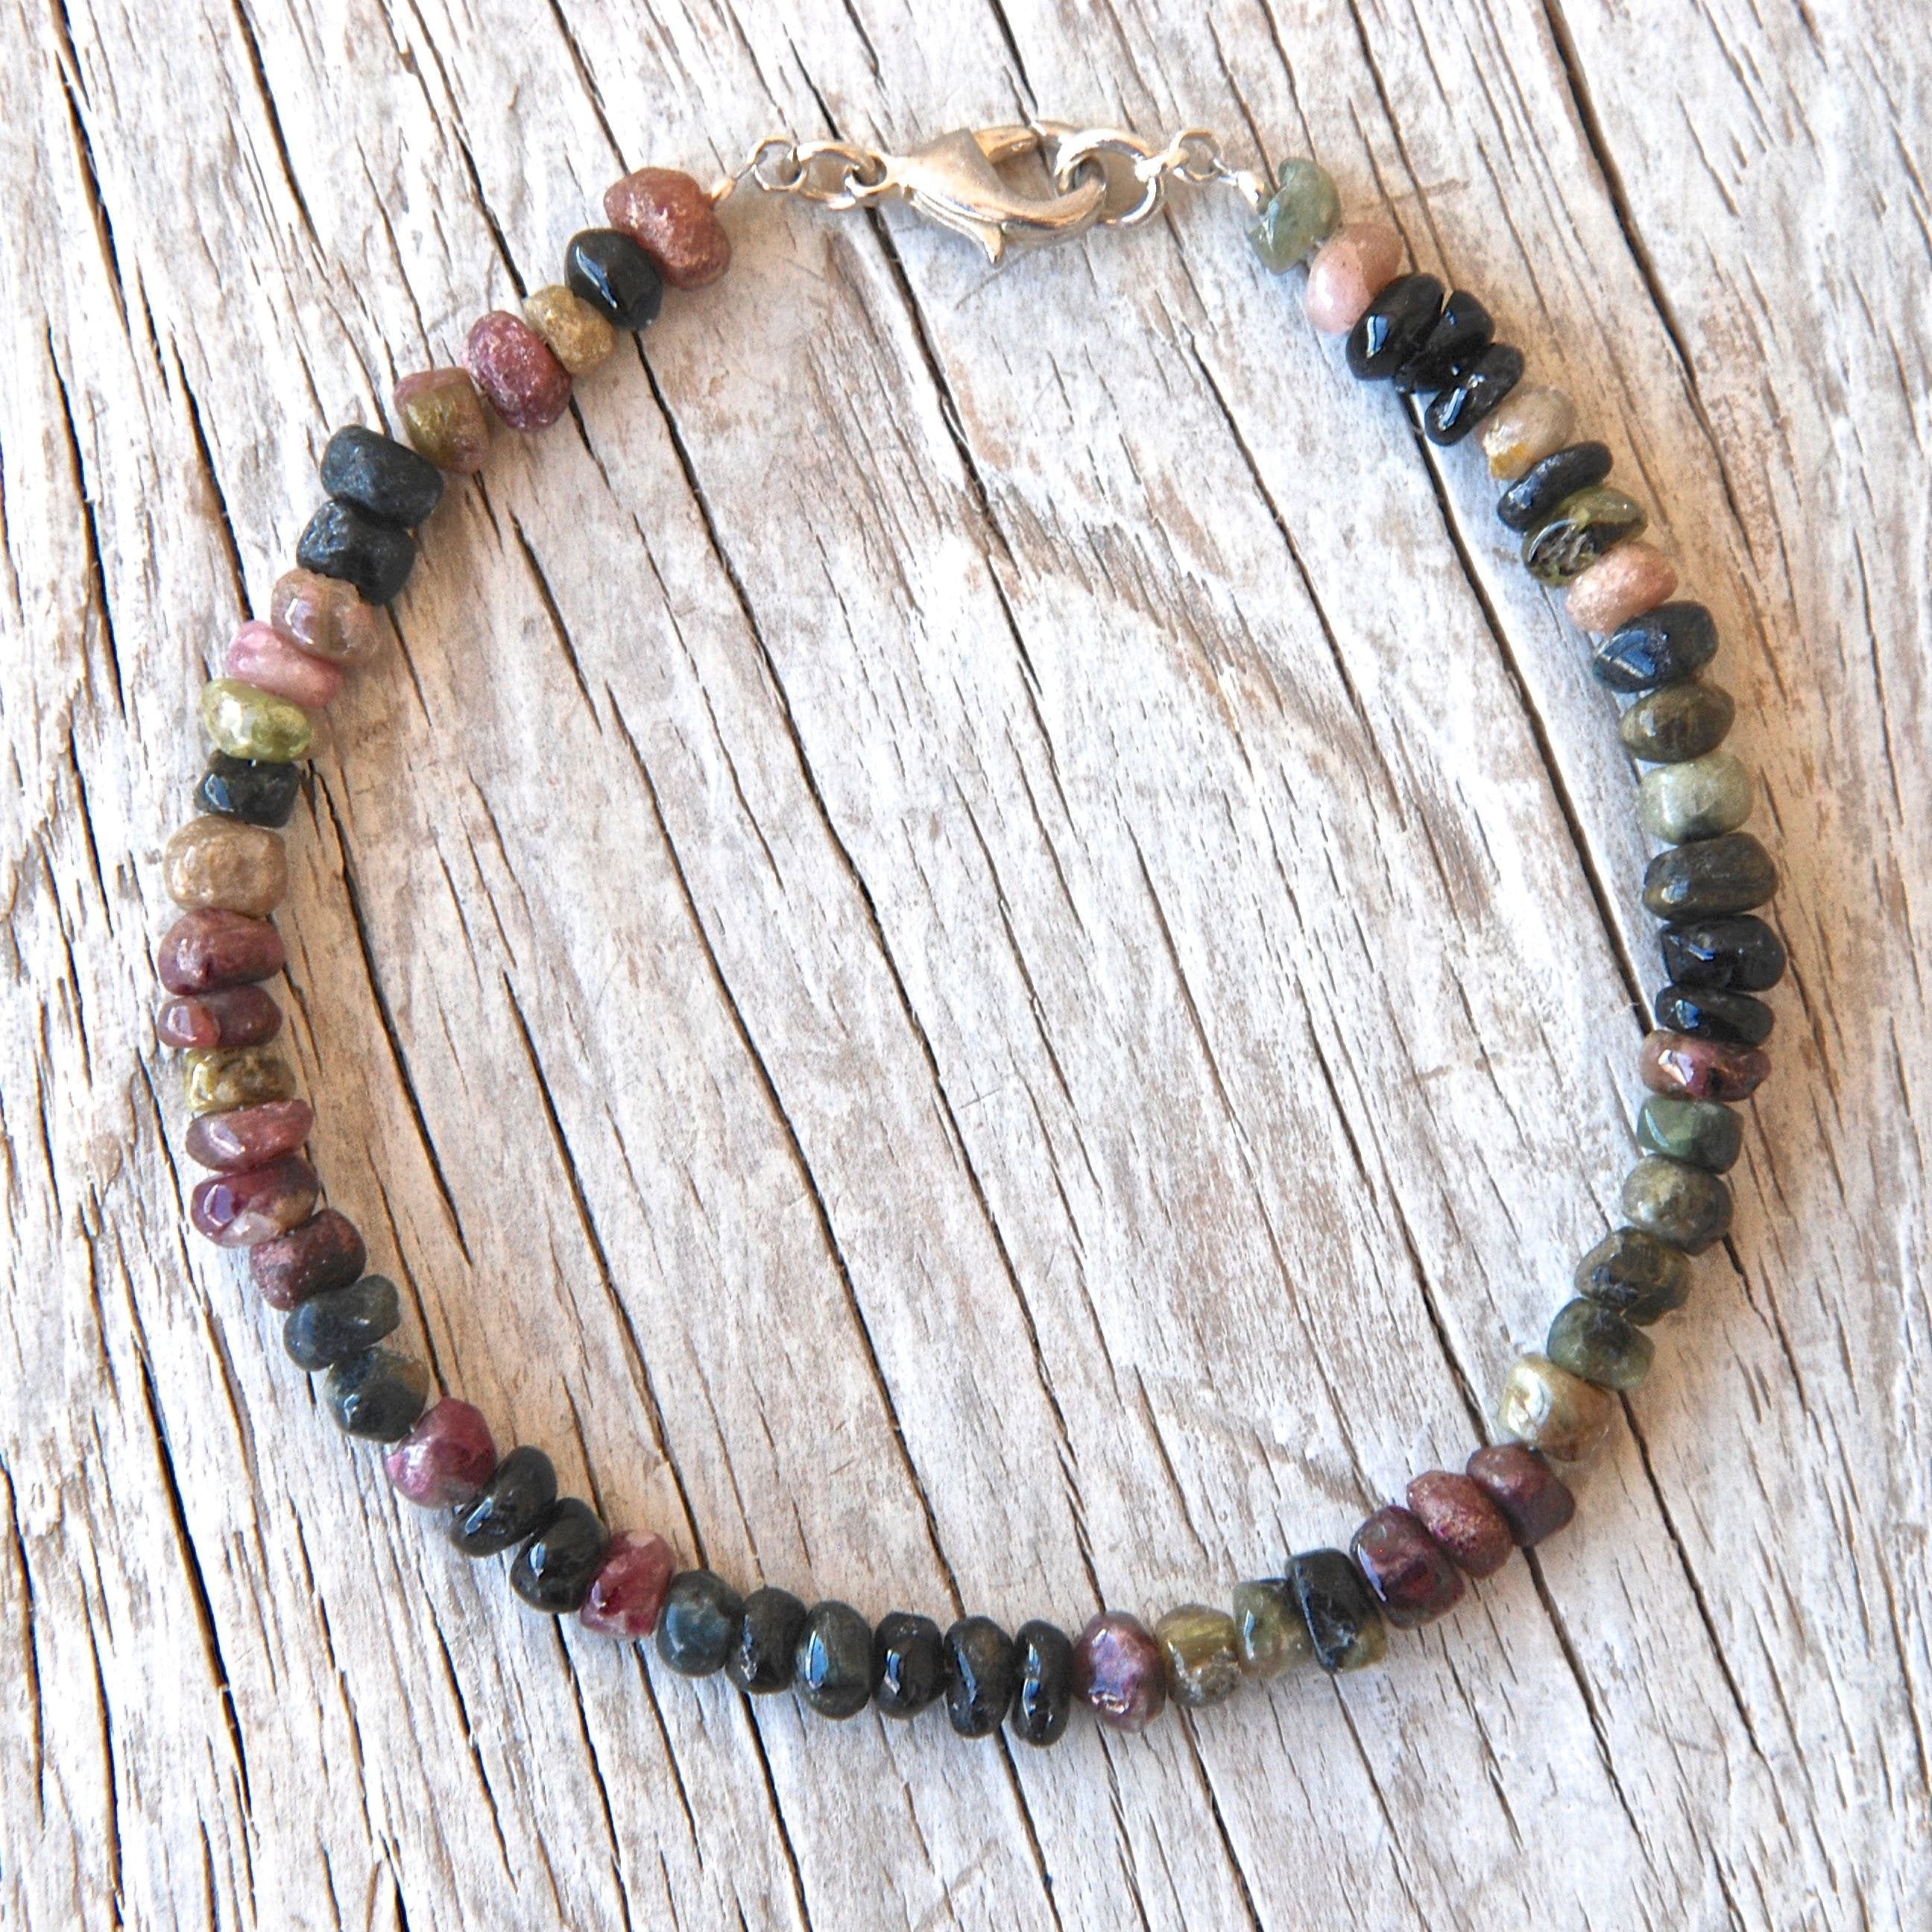 Handmade Tourmaline Beads Stacking Bracelet - Babazen